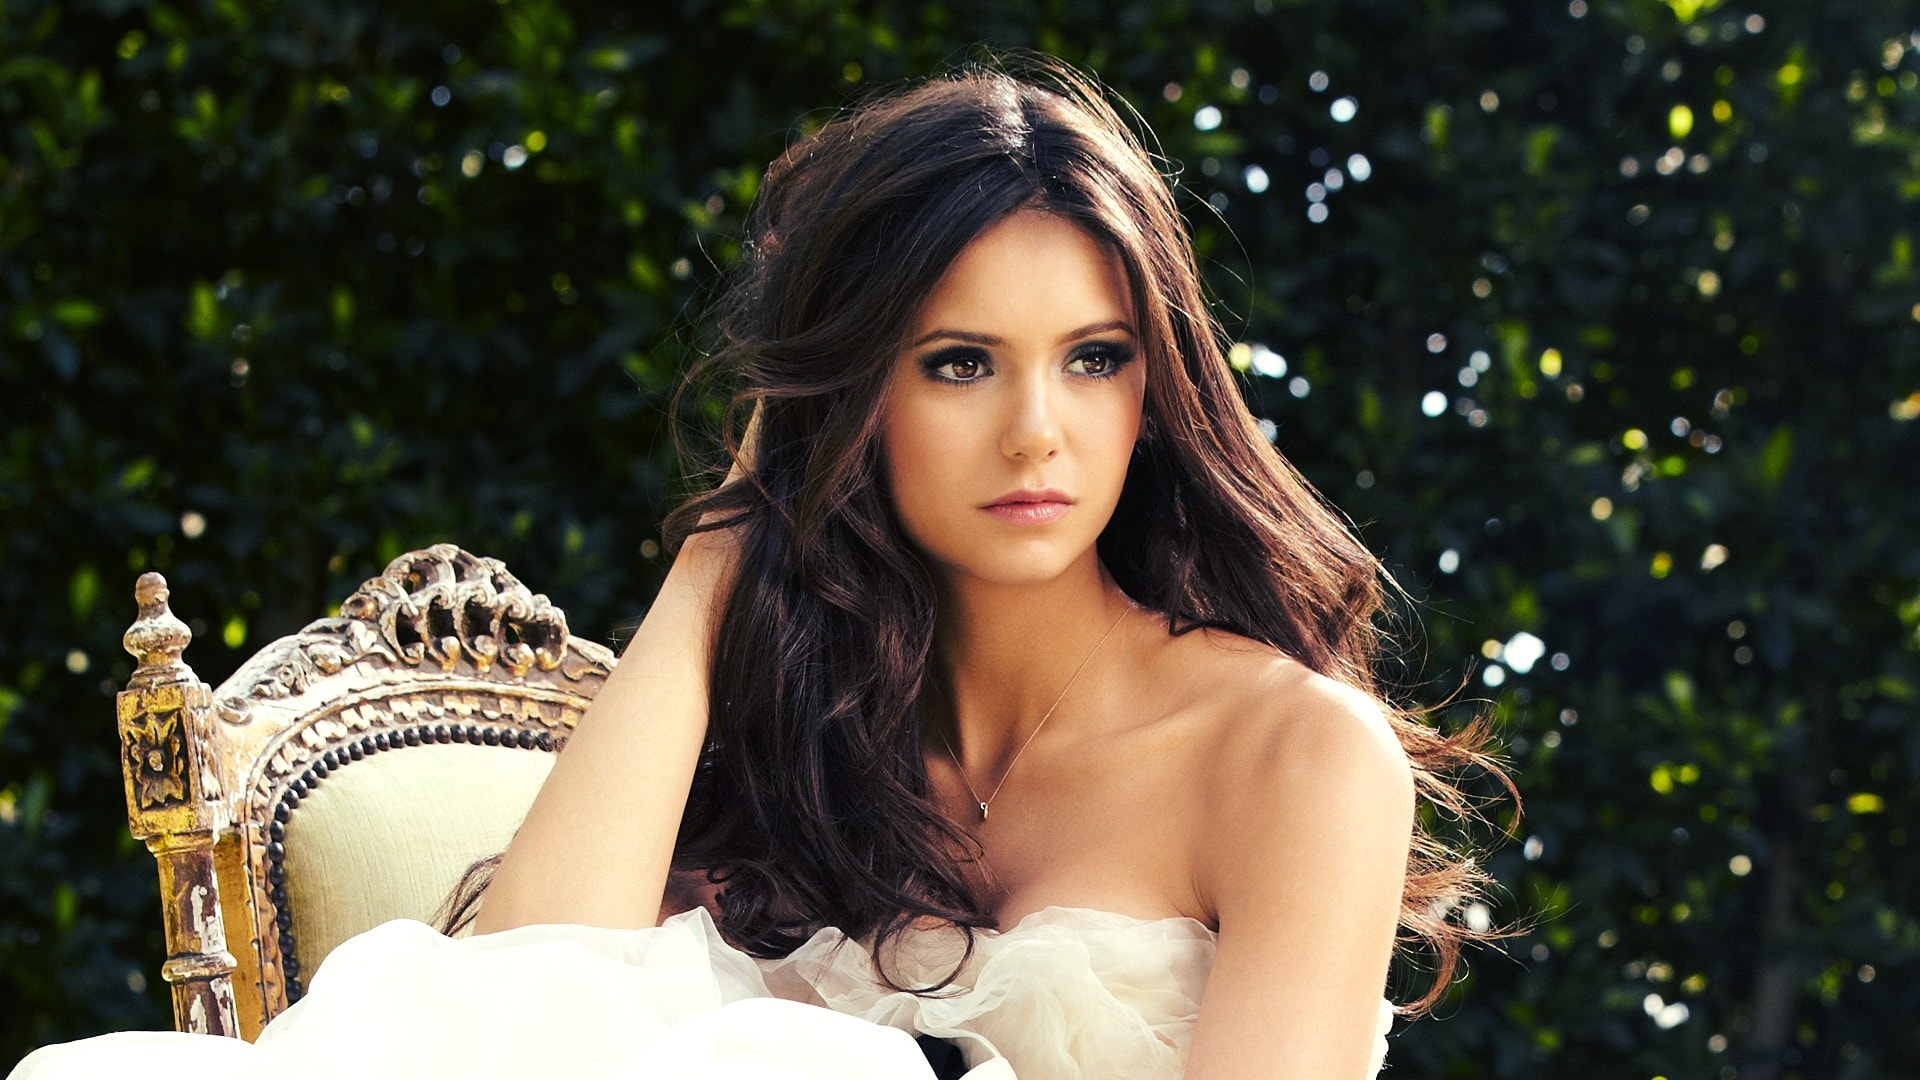 Nina Dobrev Wide wallpapers